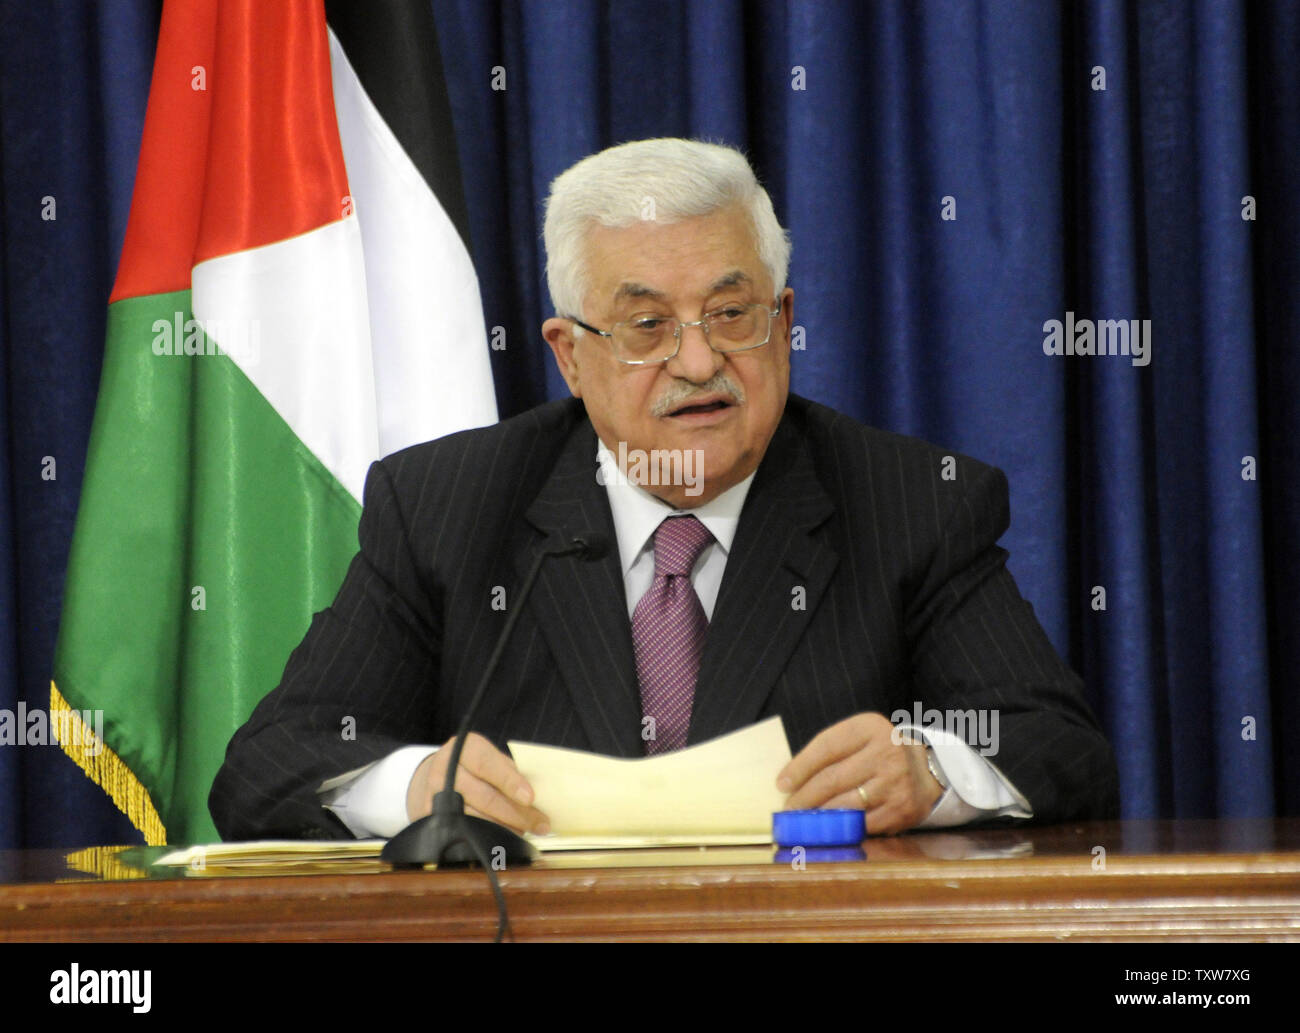 Palestinian President Mahmoud Abbas announces his decision not to seek reelection in the January elections during a speech in Ramallah, West Bank, November 5, 2009.  President Abbas cited disappointment with the US policy on Israeli settlements as one of the factors that led to his decision.  UPI/Debbie Hill - Stock Image